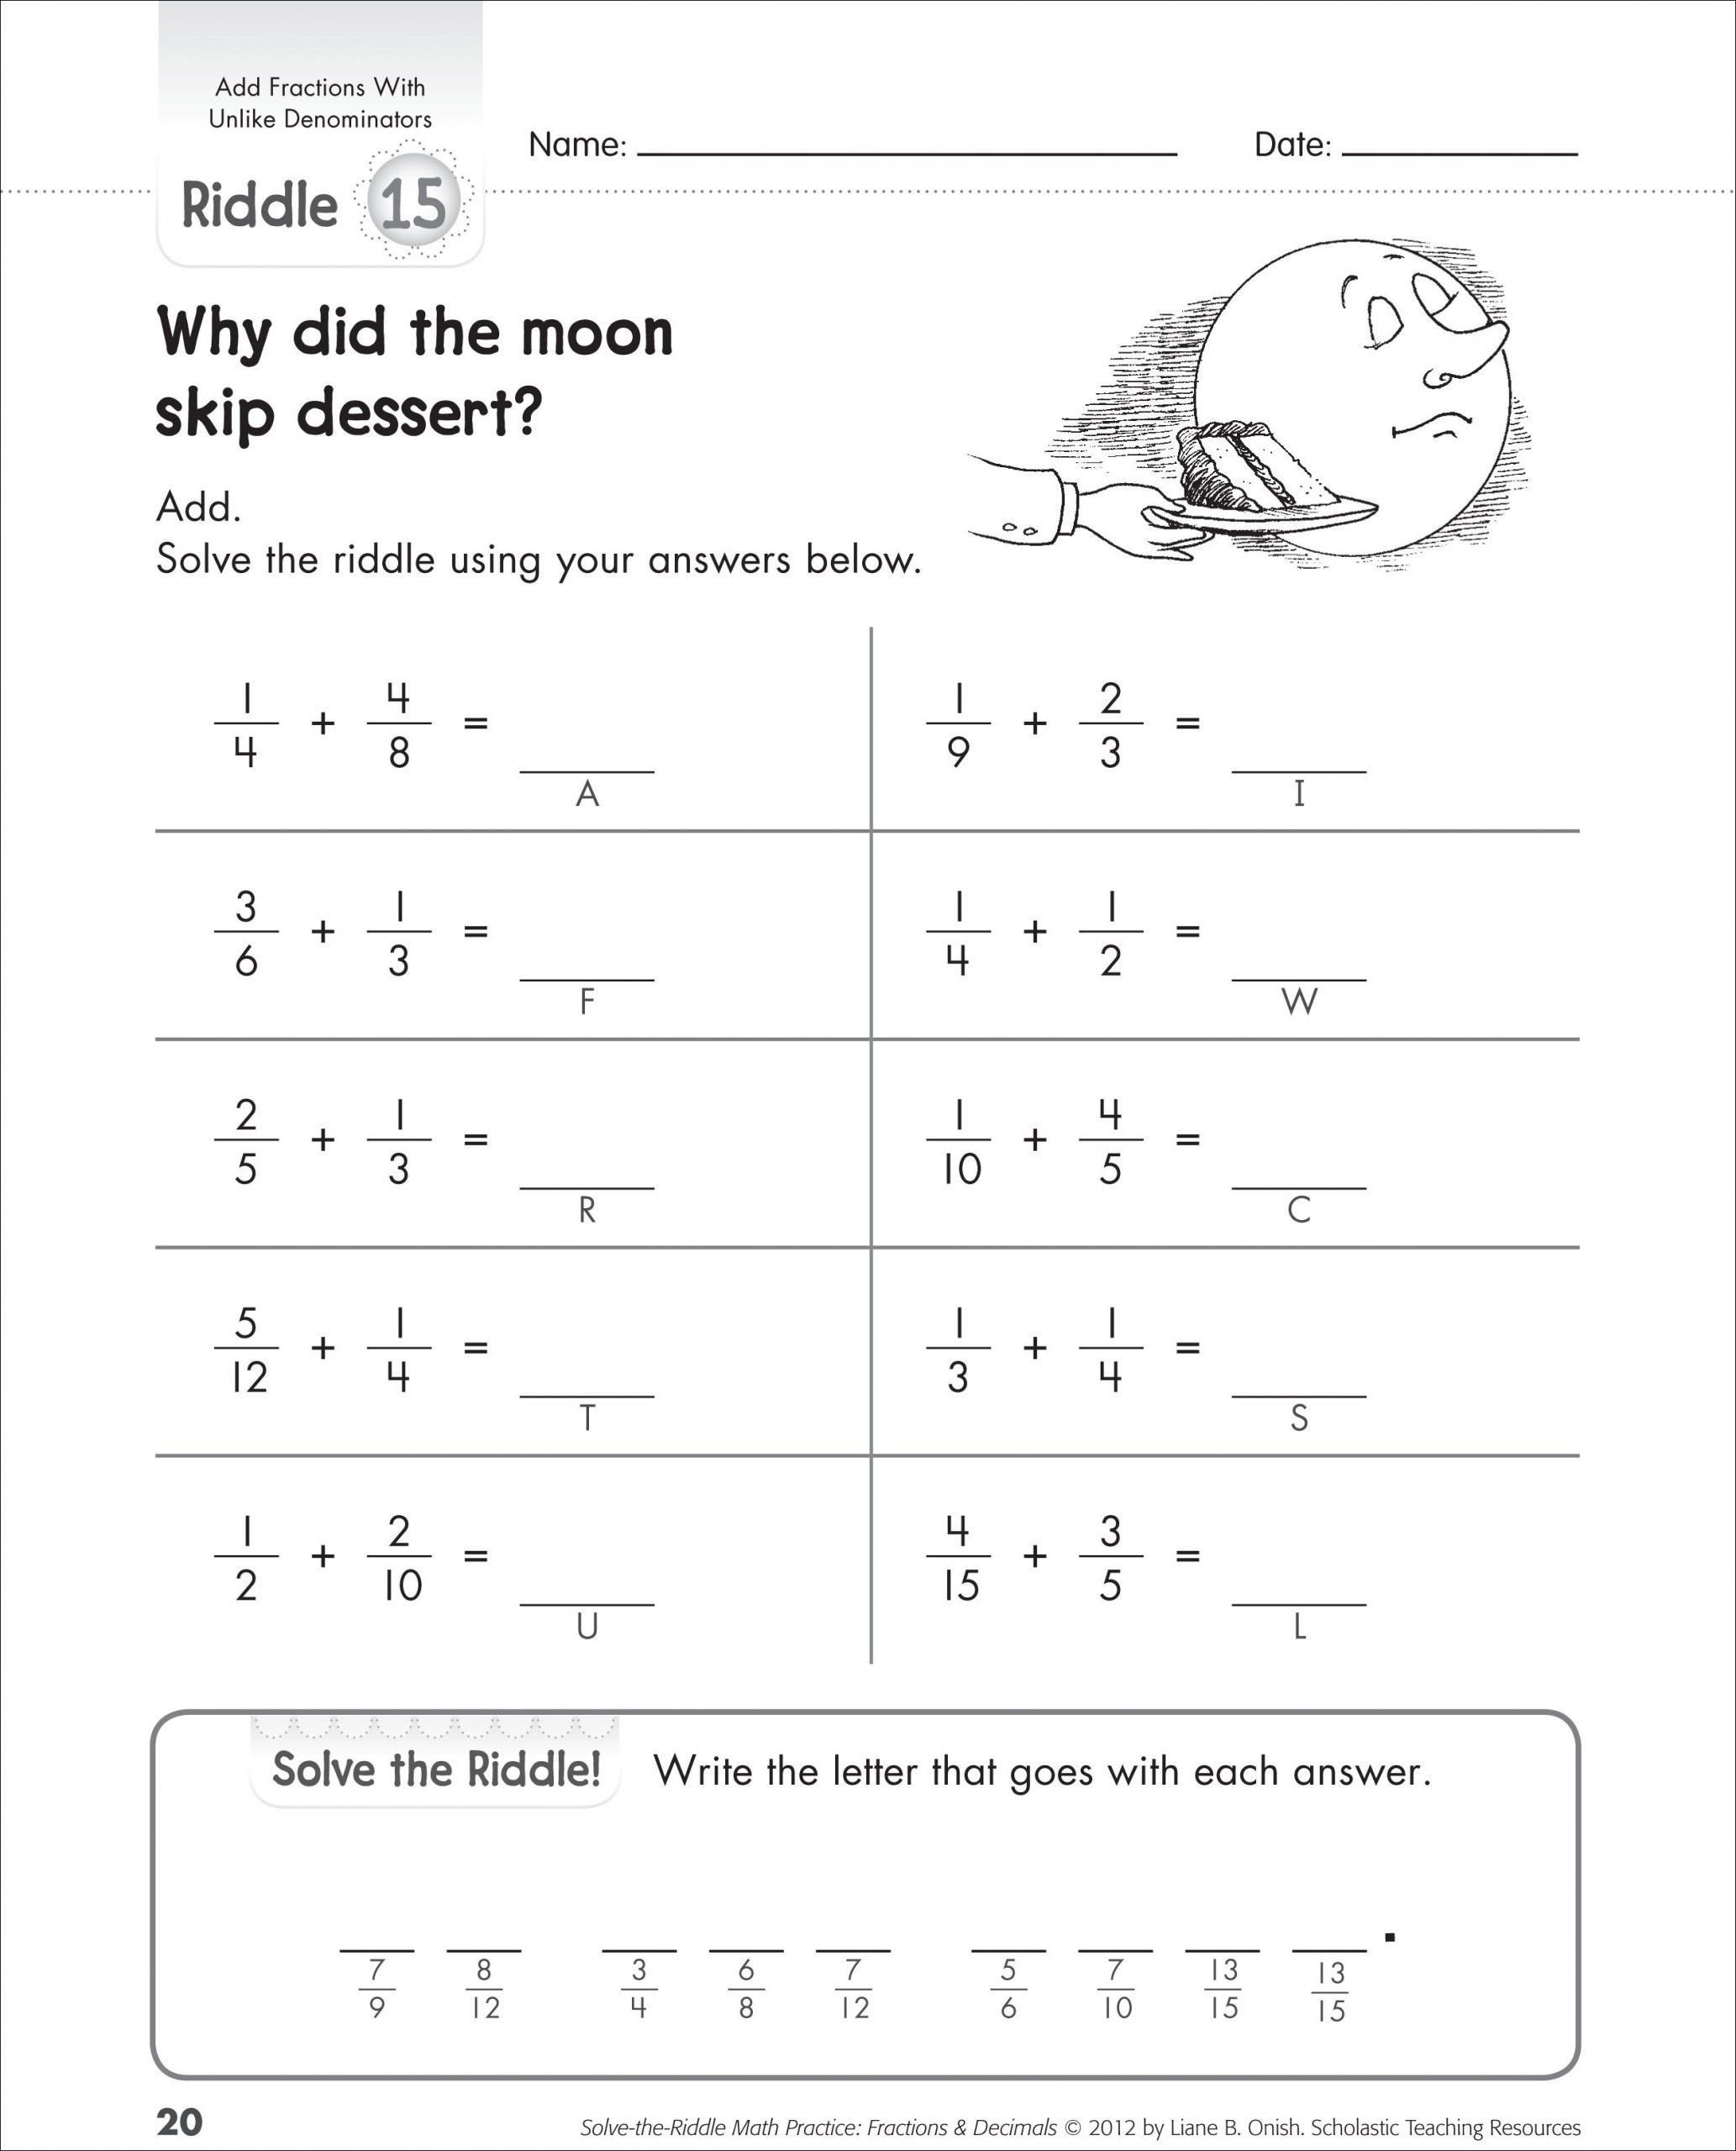 Scholastic Math Worksheets Pin On Fun Math Printable Worksheets